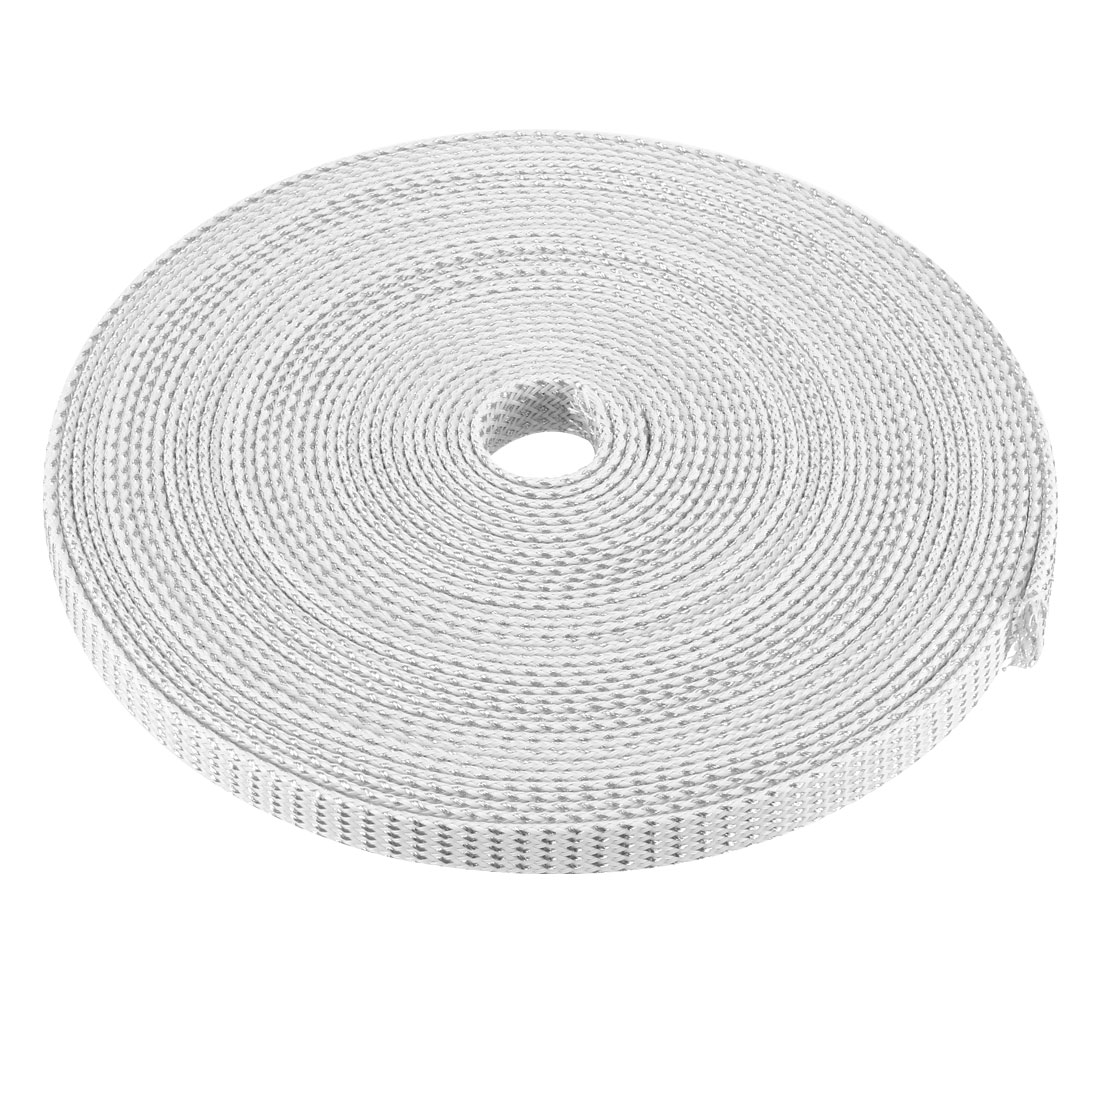 12mm Dia Tight Braided PET Expandable Sleeving Cable Wrap Sheath Silver White 32Ft